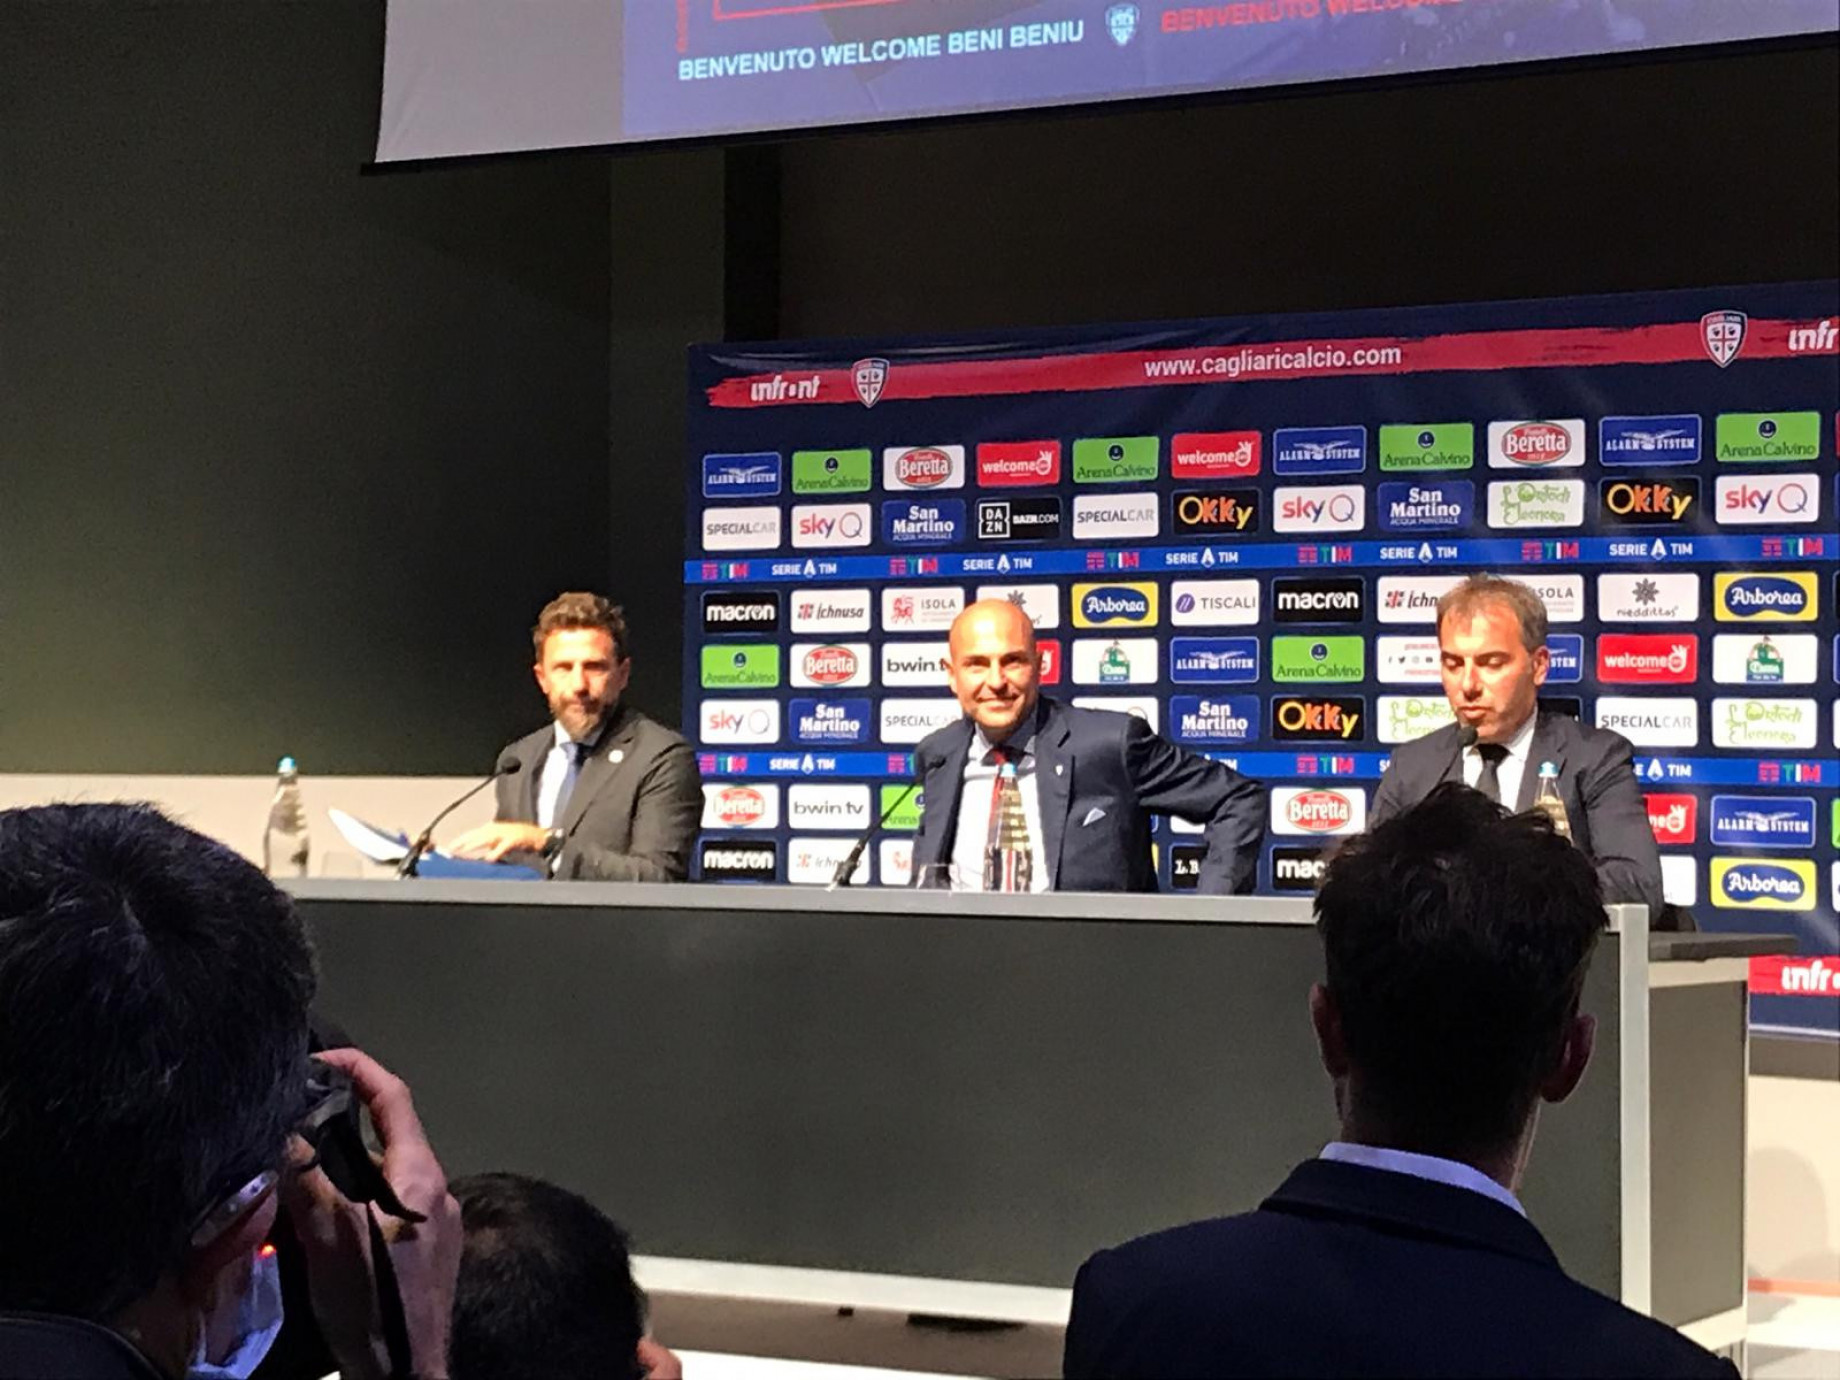 Di Francesco conferenza Cagliari 1 GDM